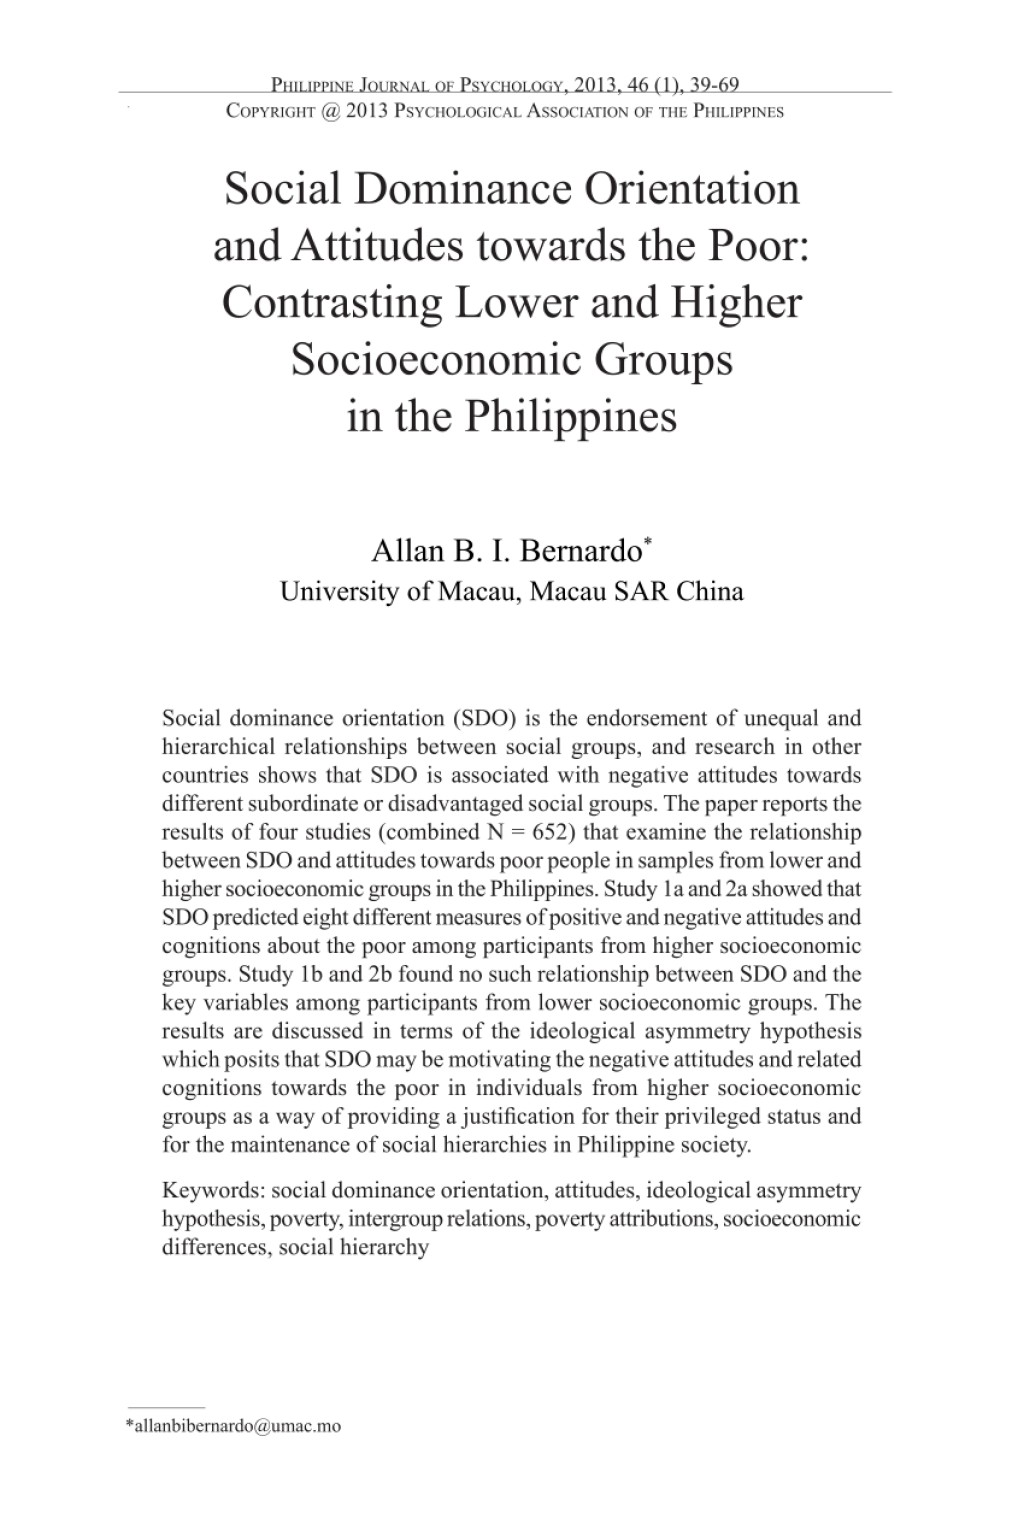 009 Research Paper Largepreview Poverty In The Philippines Remarkable Abstract Large